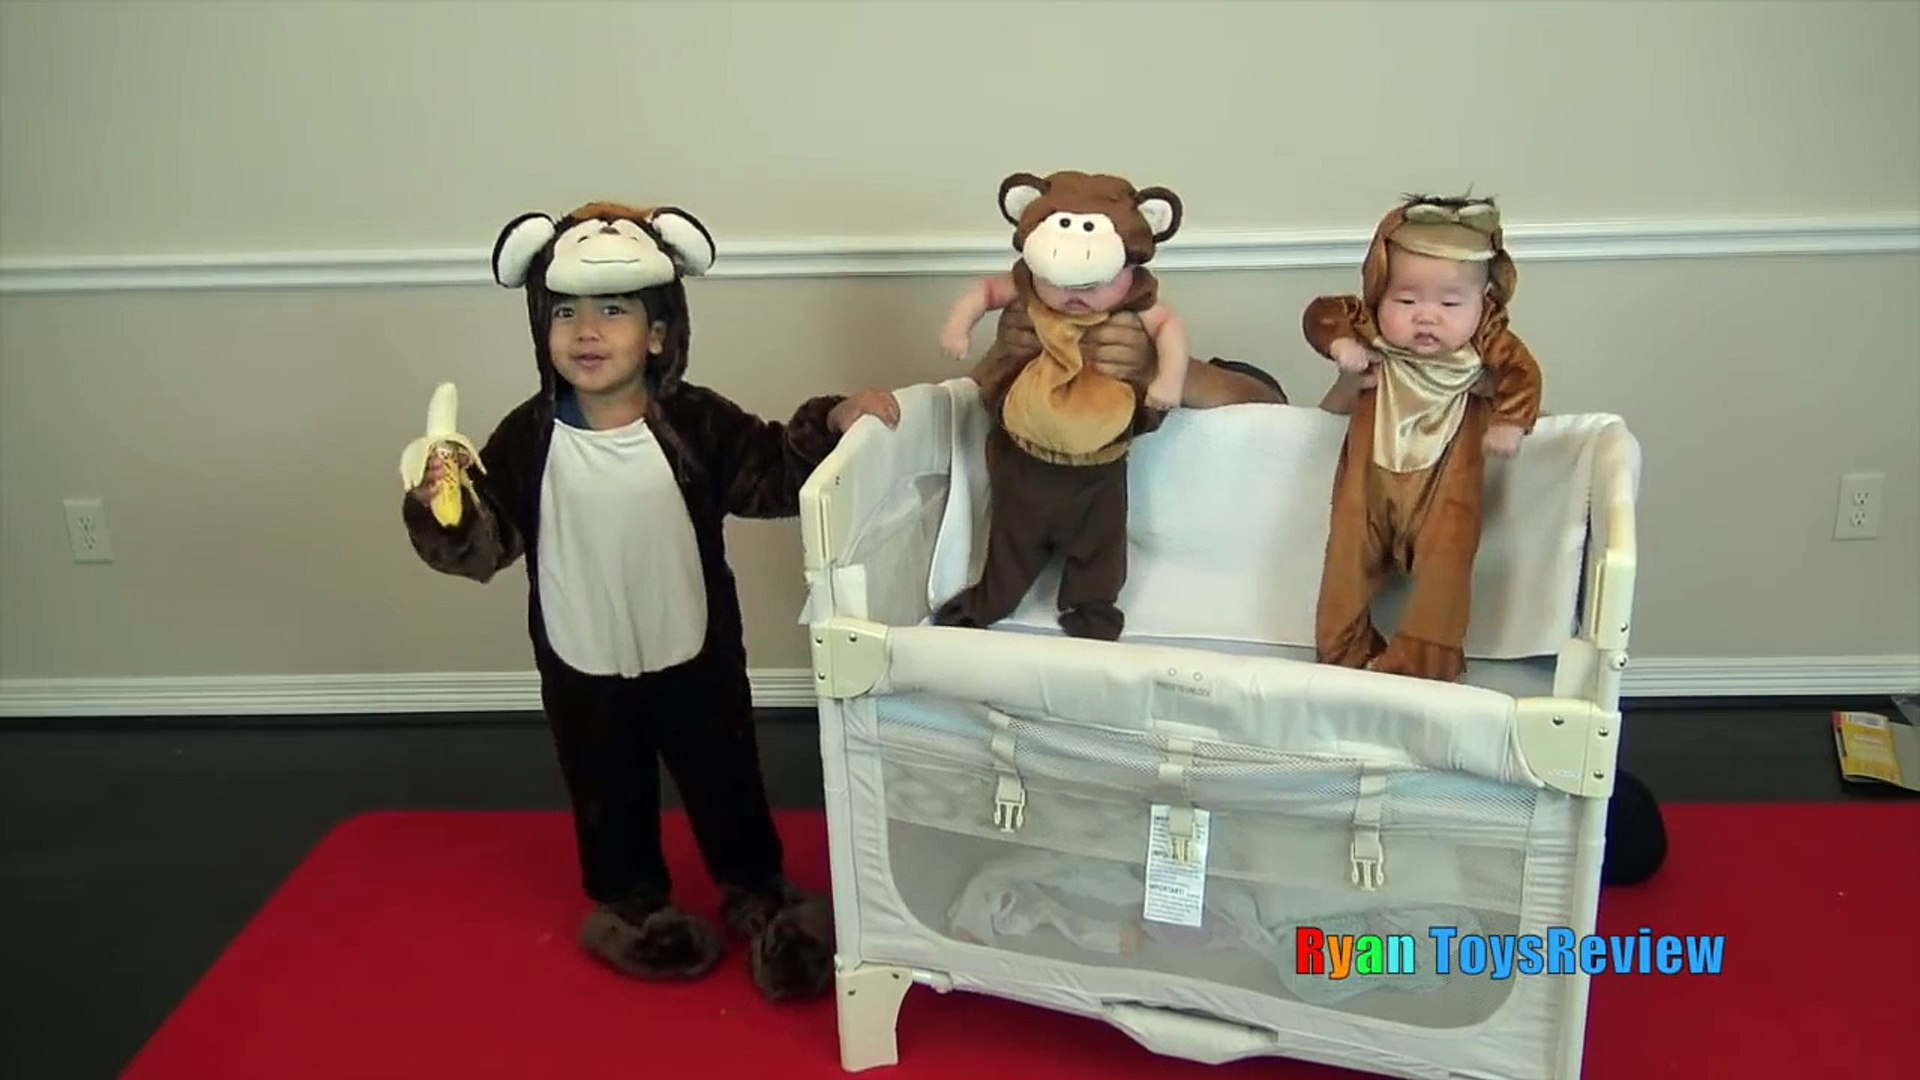 KIDS COSTUME RUNWAY SHOW Top costumes ideas for family, kids part 2